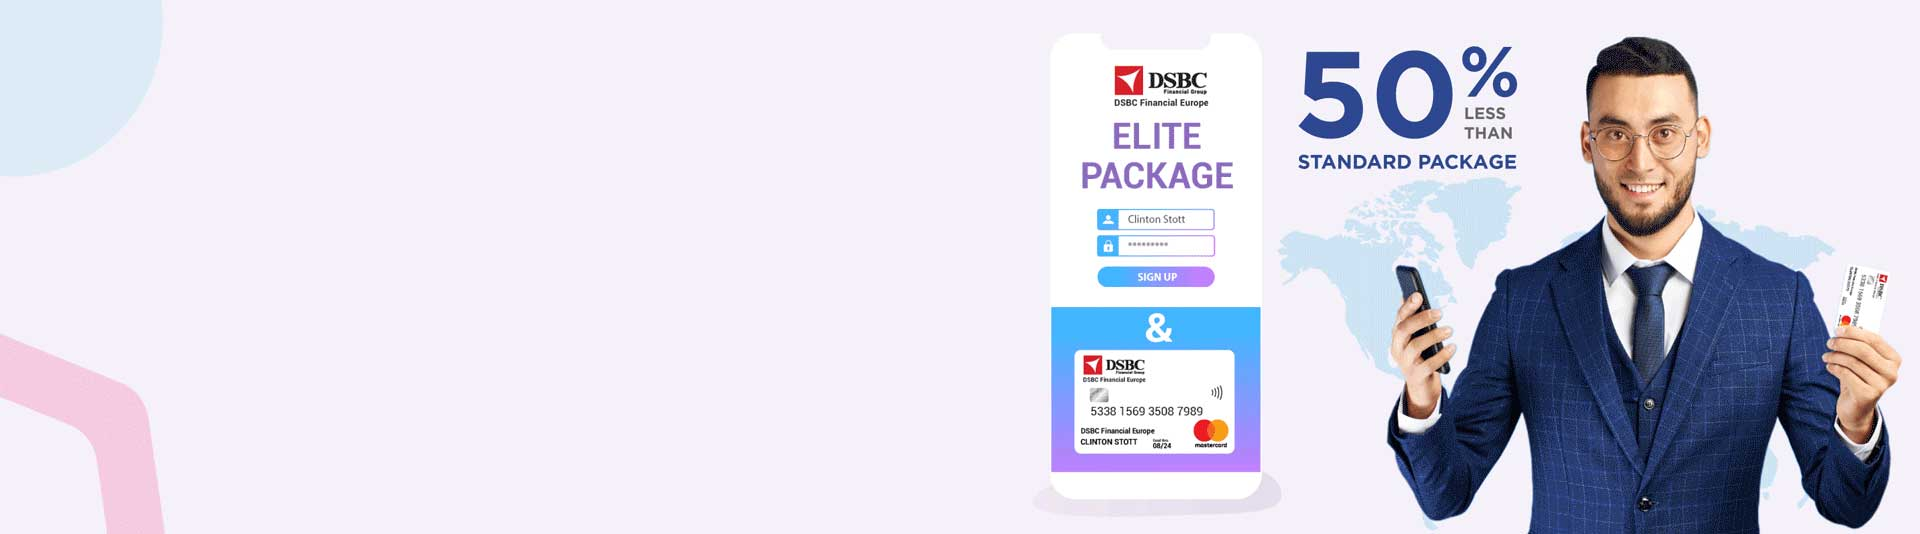 Introducing the all-new Elite Package